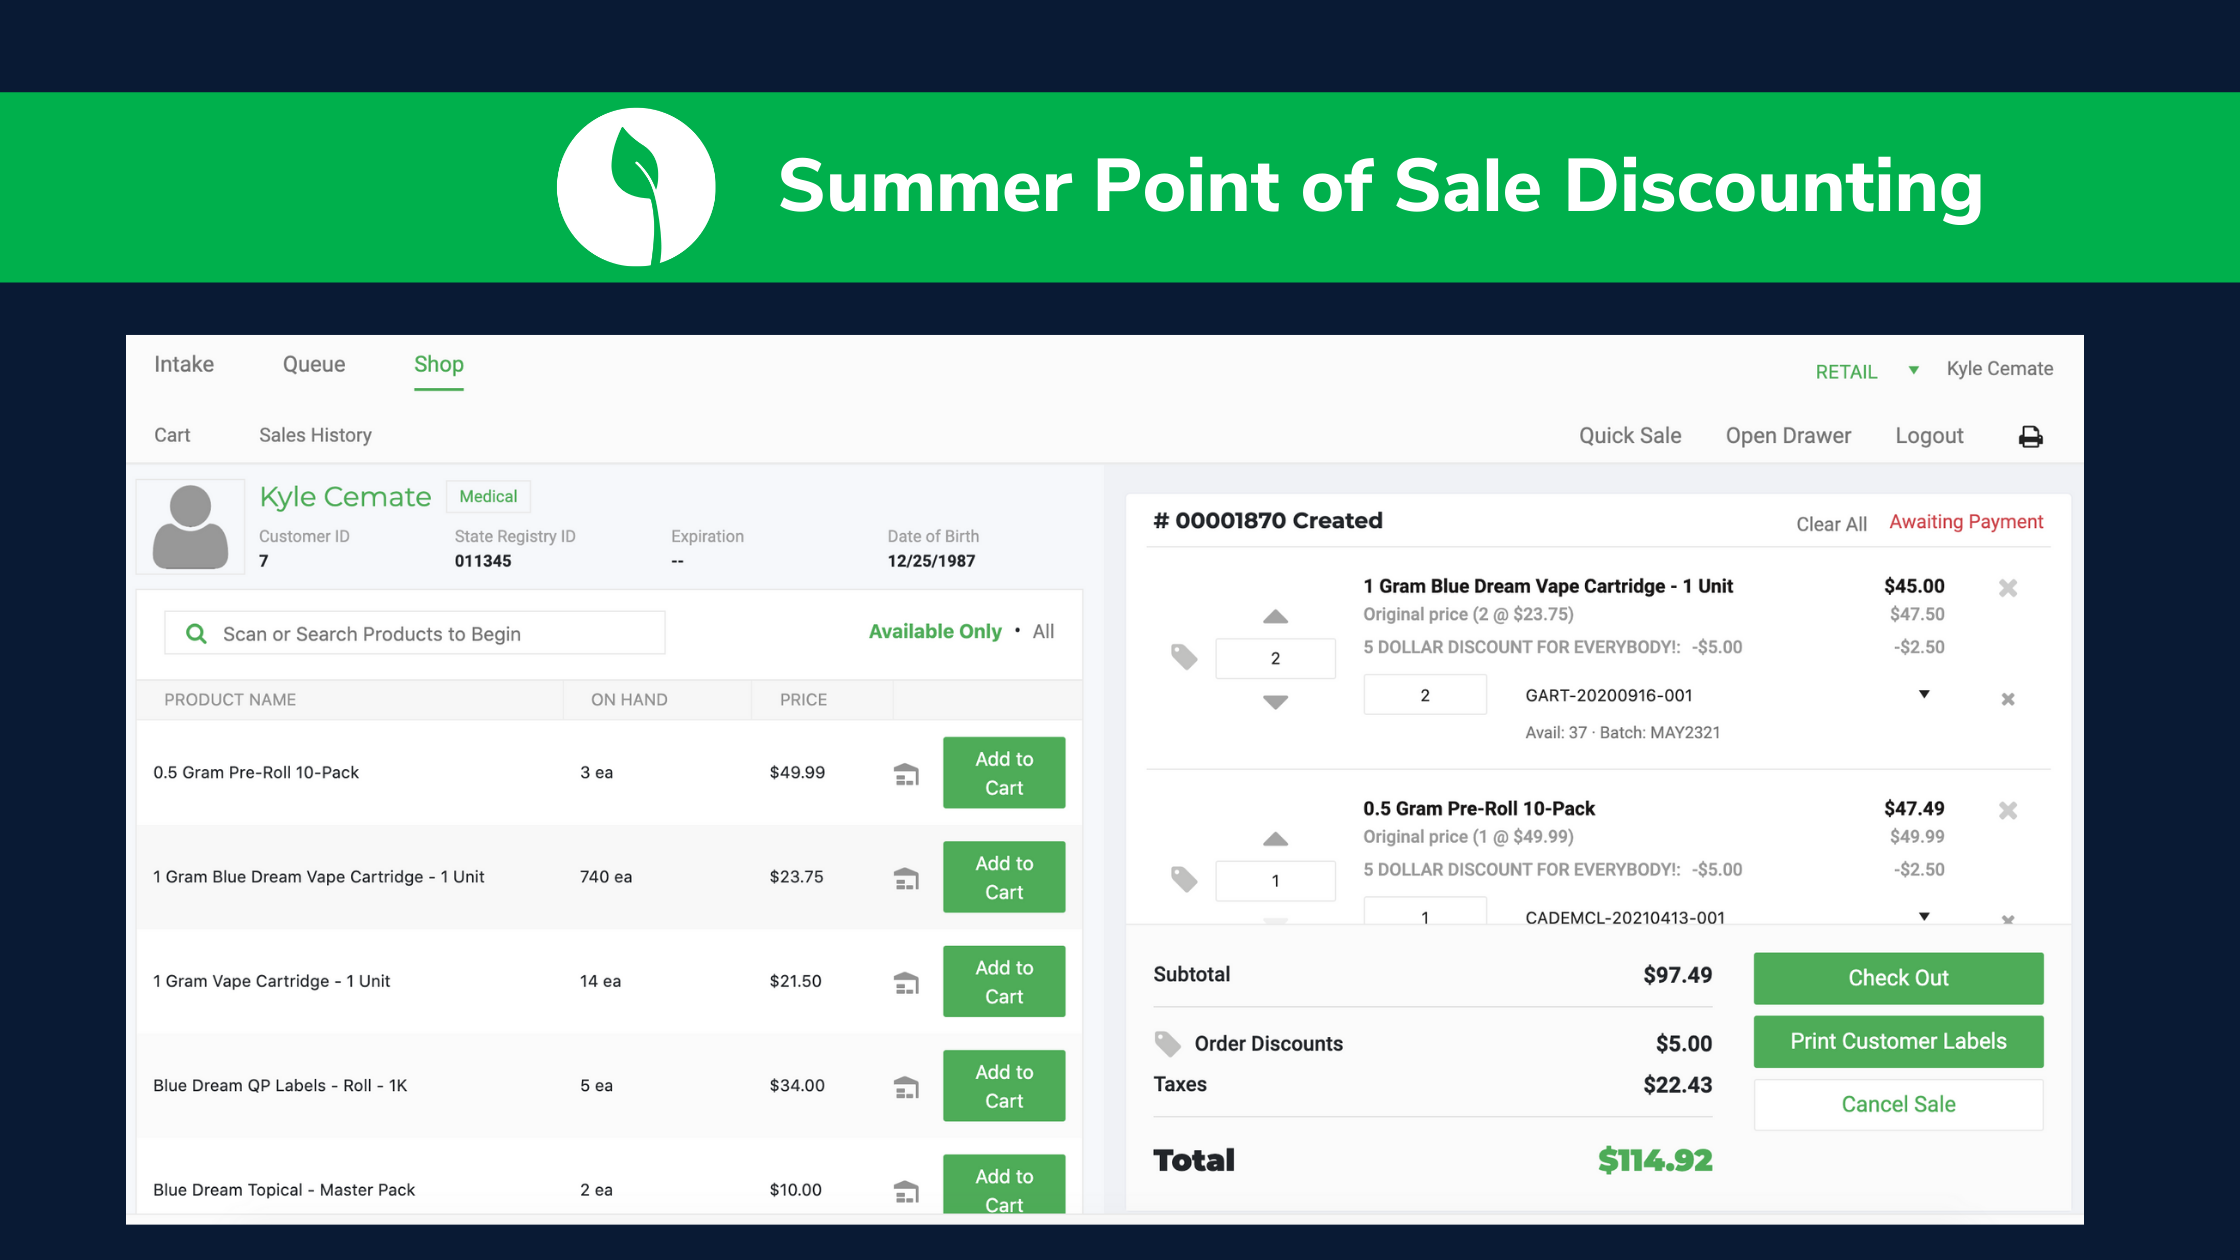 Summer Point of Sale Discounting